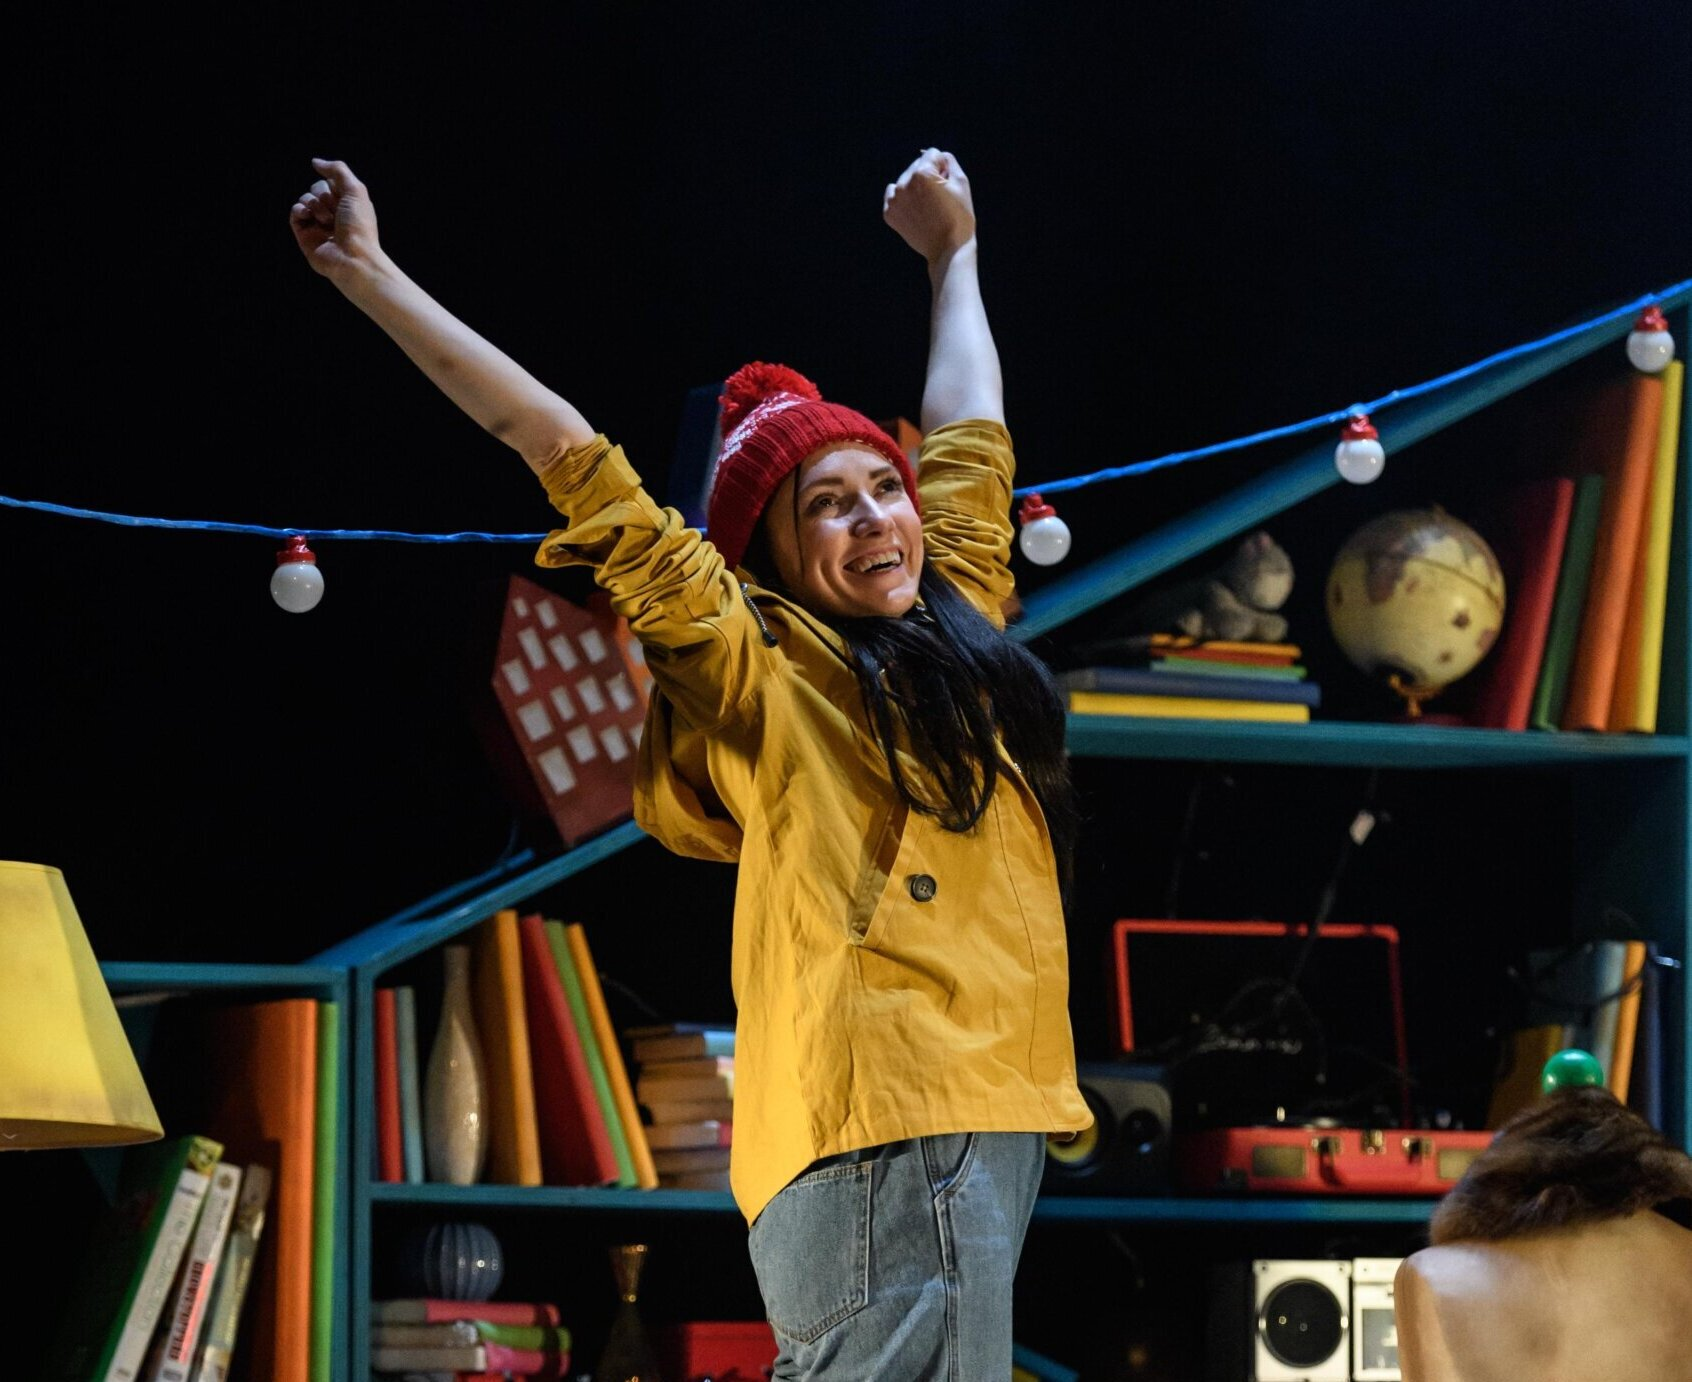 A young woman stand looking happy with her arms raised in triumph. She is wearing a yellow anorak and a red bobble hat and standing on a colourful stage